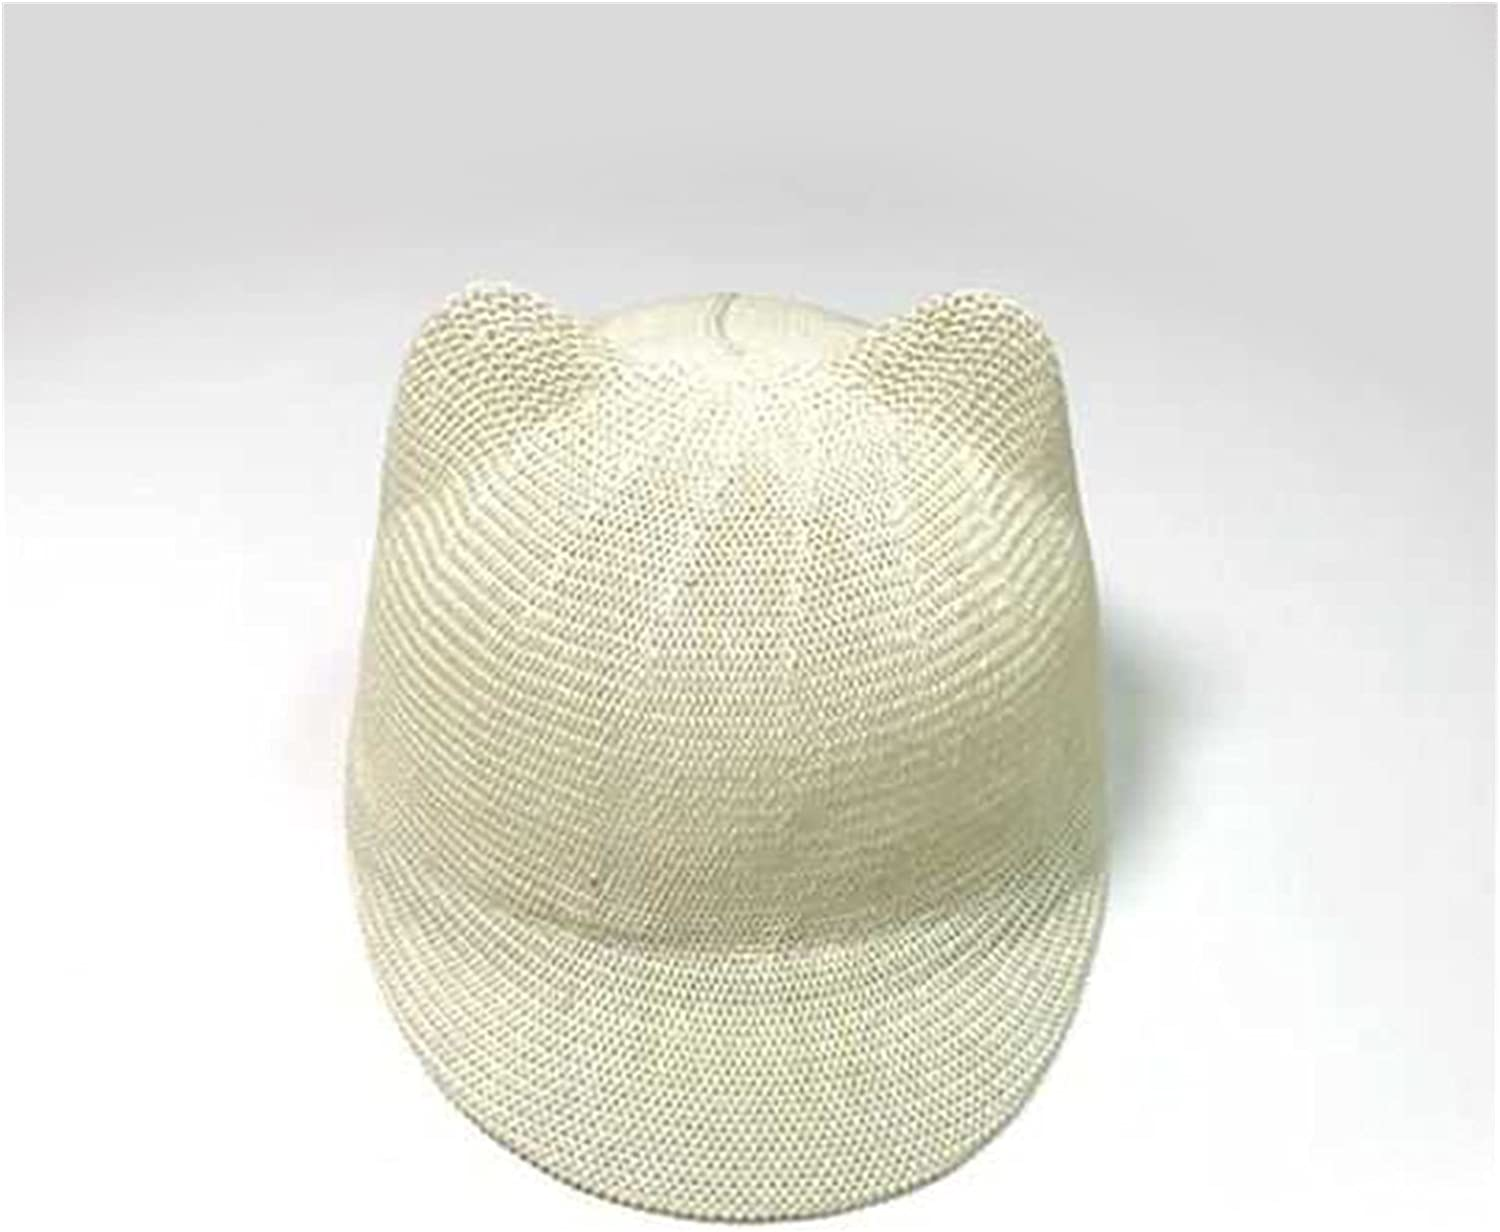 CHENGCHAO Sun hat New Straw Cap for Boy Girl Solid Summer Baby Sun Hat Breathable with Ears Beach Kids Snapback Hats Children Baseball Cap Shading (Color : 2, Size : 48 52cm)